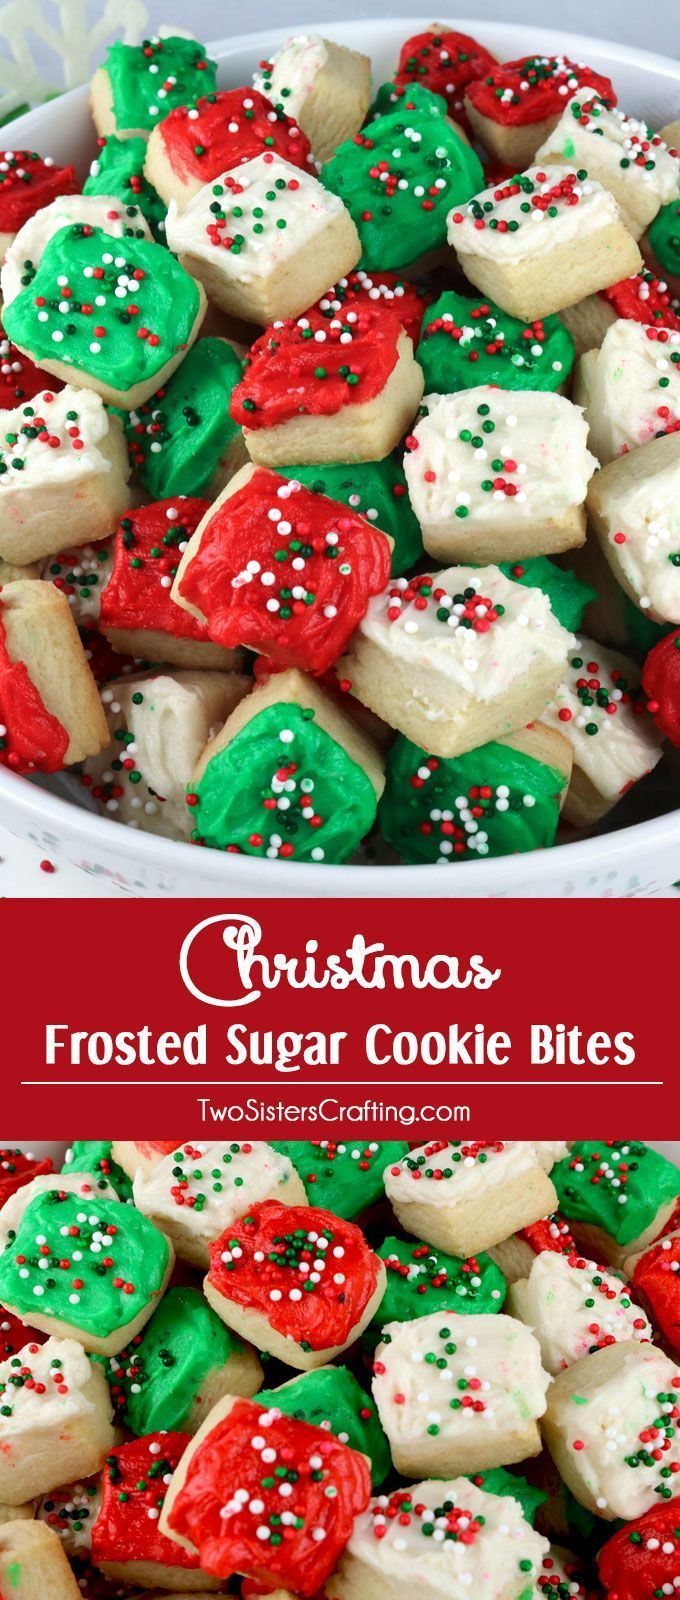 Christmas Sugar Cookie Bites - these yummy Christmas Treats are so easy to decorate that even the youngest family member can join in on the fun.  They are a super delicious bite-sized taste of sugar cookie and creamy buttercream frosting.  You'll definite